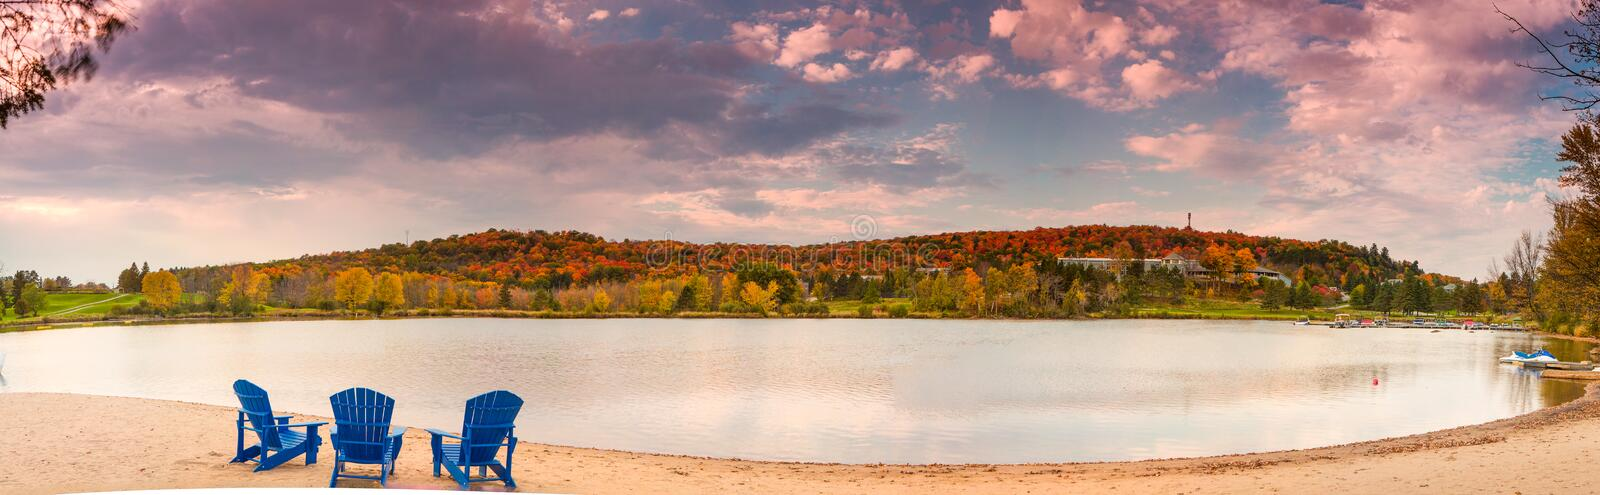 Deerhurst Resort. Is in Huntsville. It is famous resort for its landscape and G8 royalty free stock images